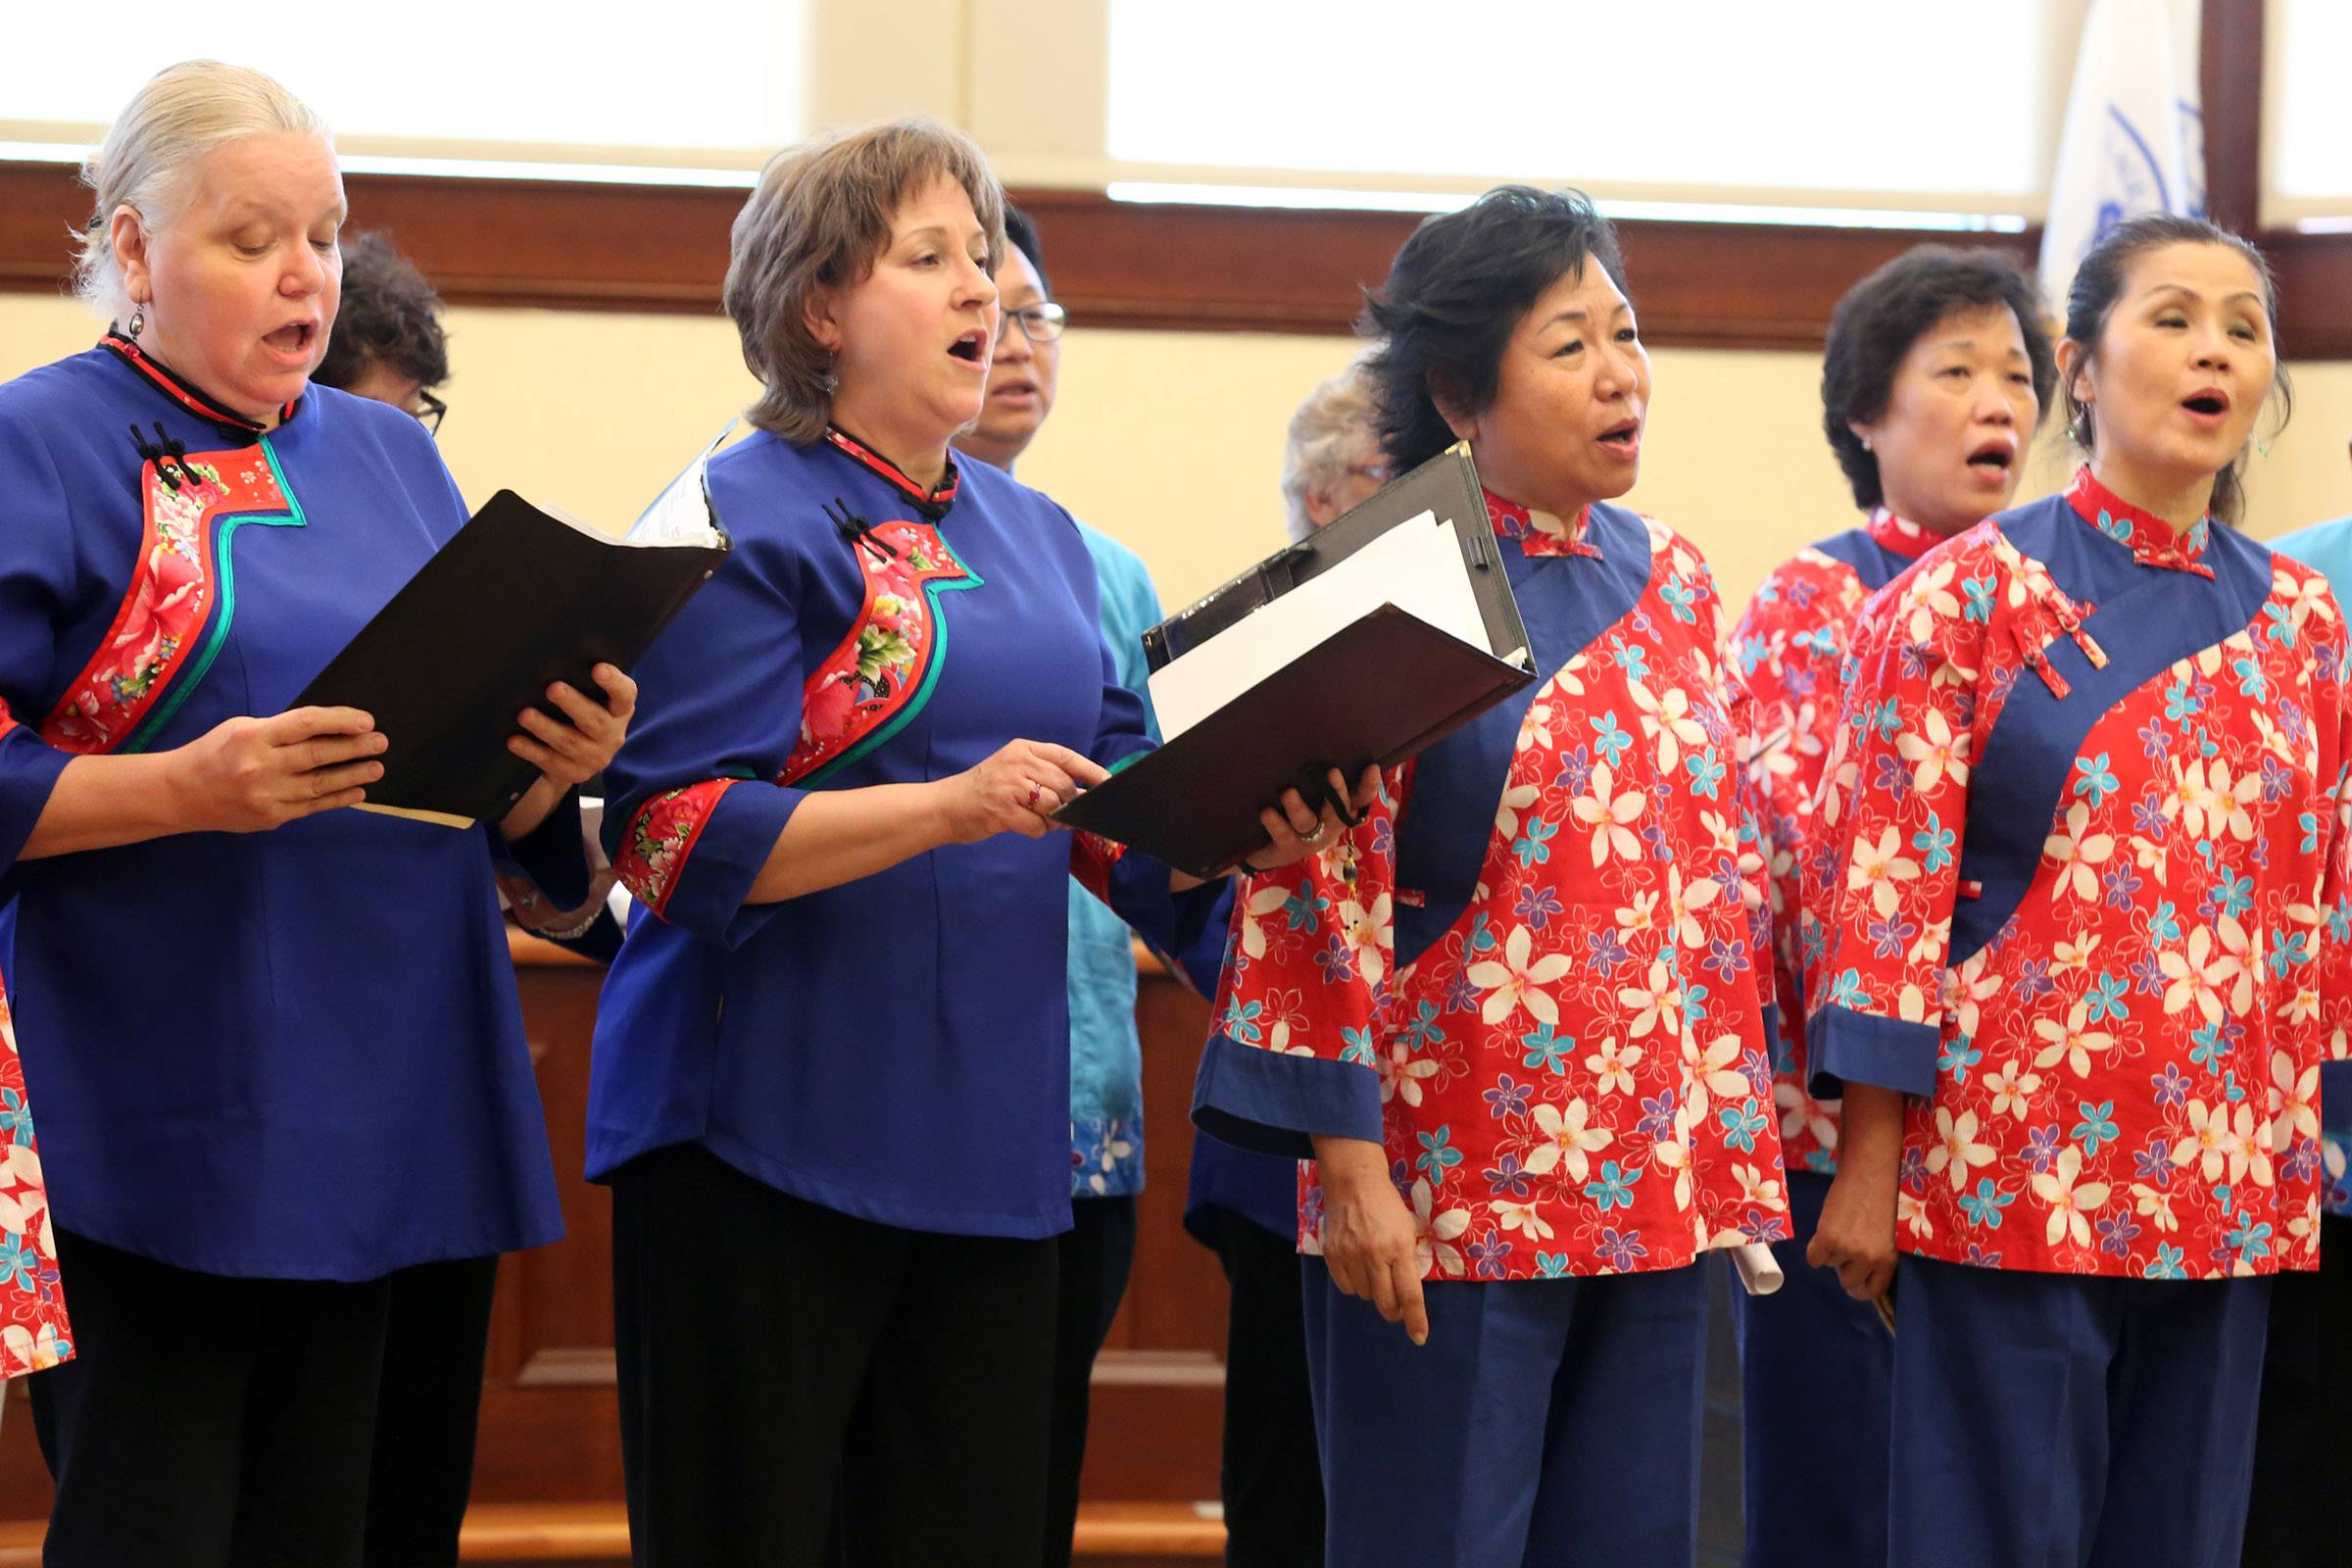 The Bartlett International Chorus joins the Chicago Hakka Chorus at Bartlett's village hall to officially open a photo exhibit featuring Taiwanese photographers.